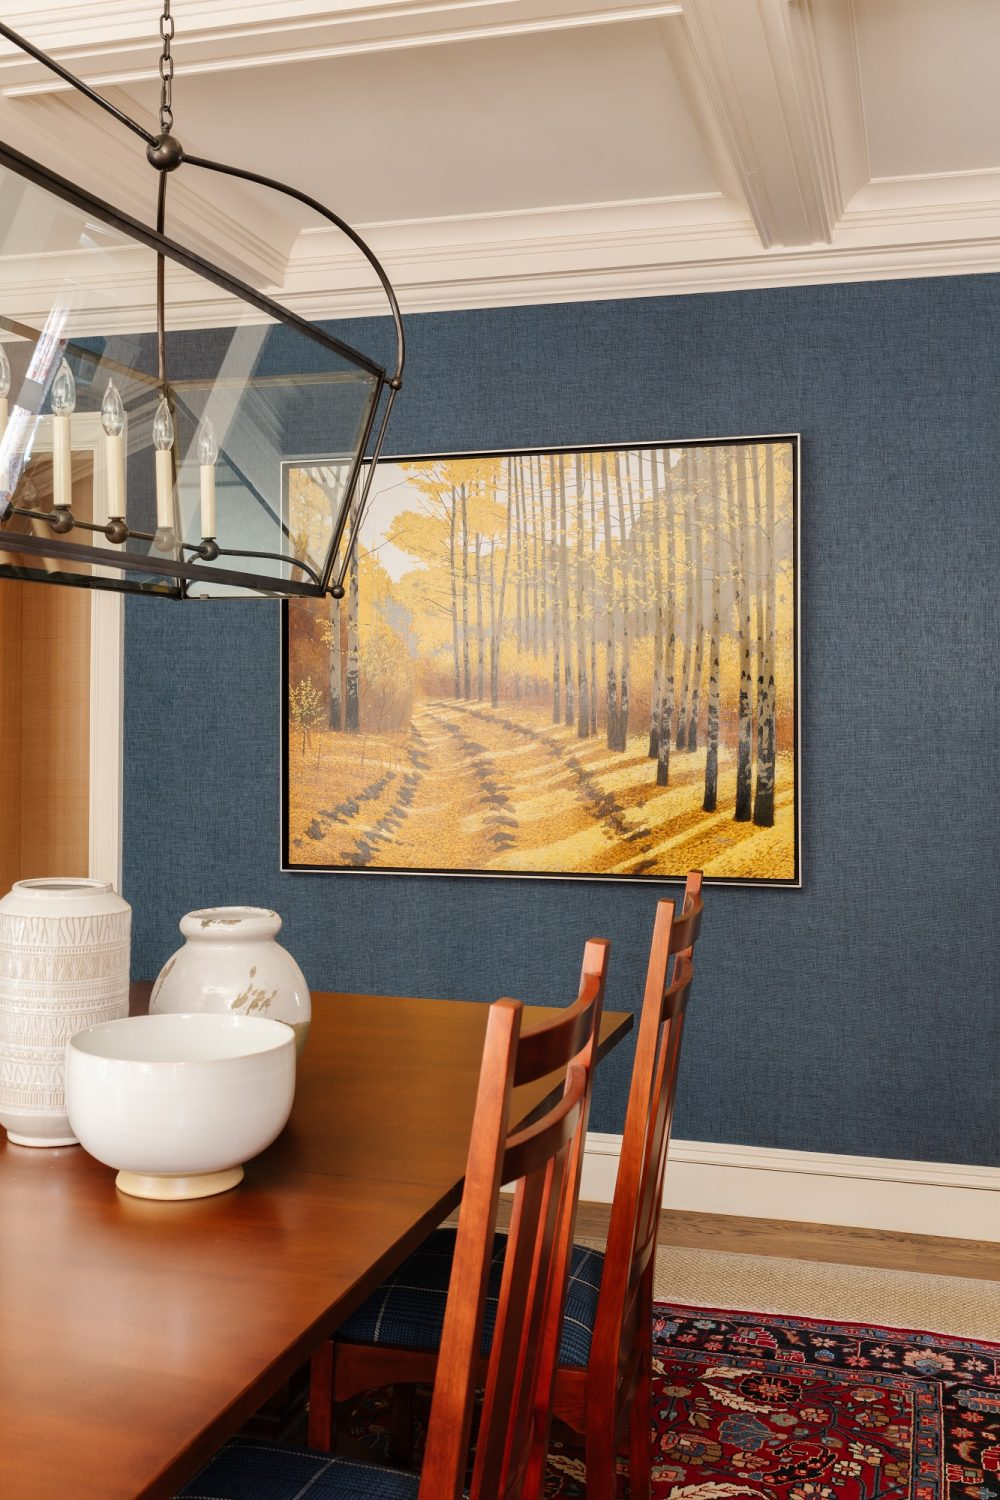 Dining room table with pottery and painting